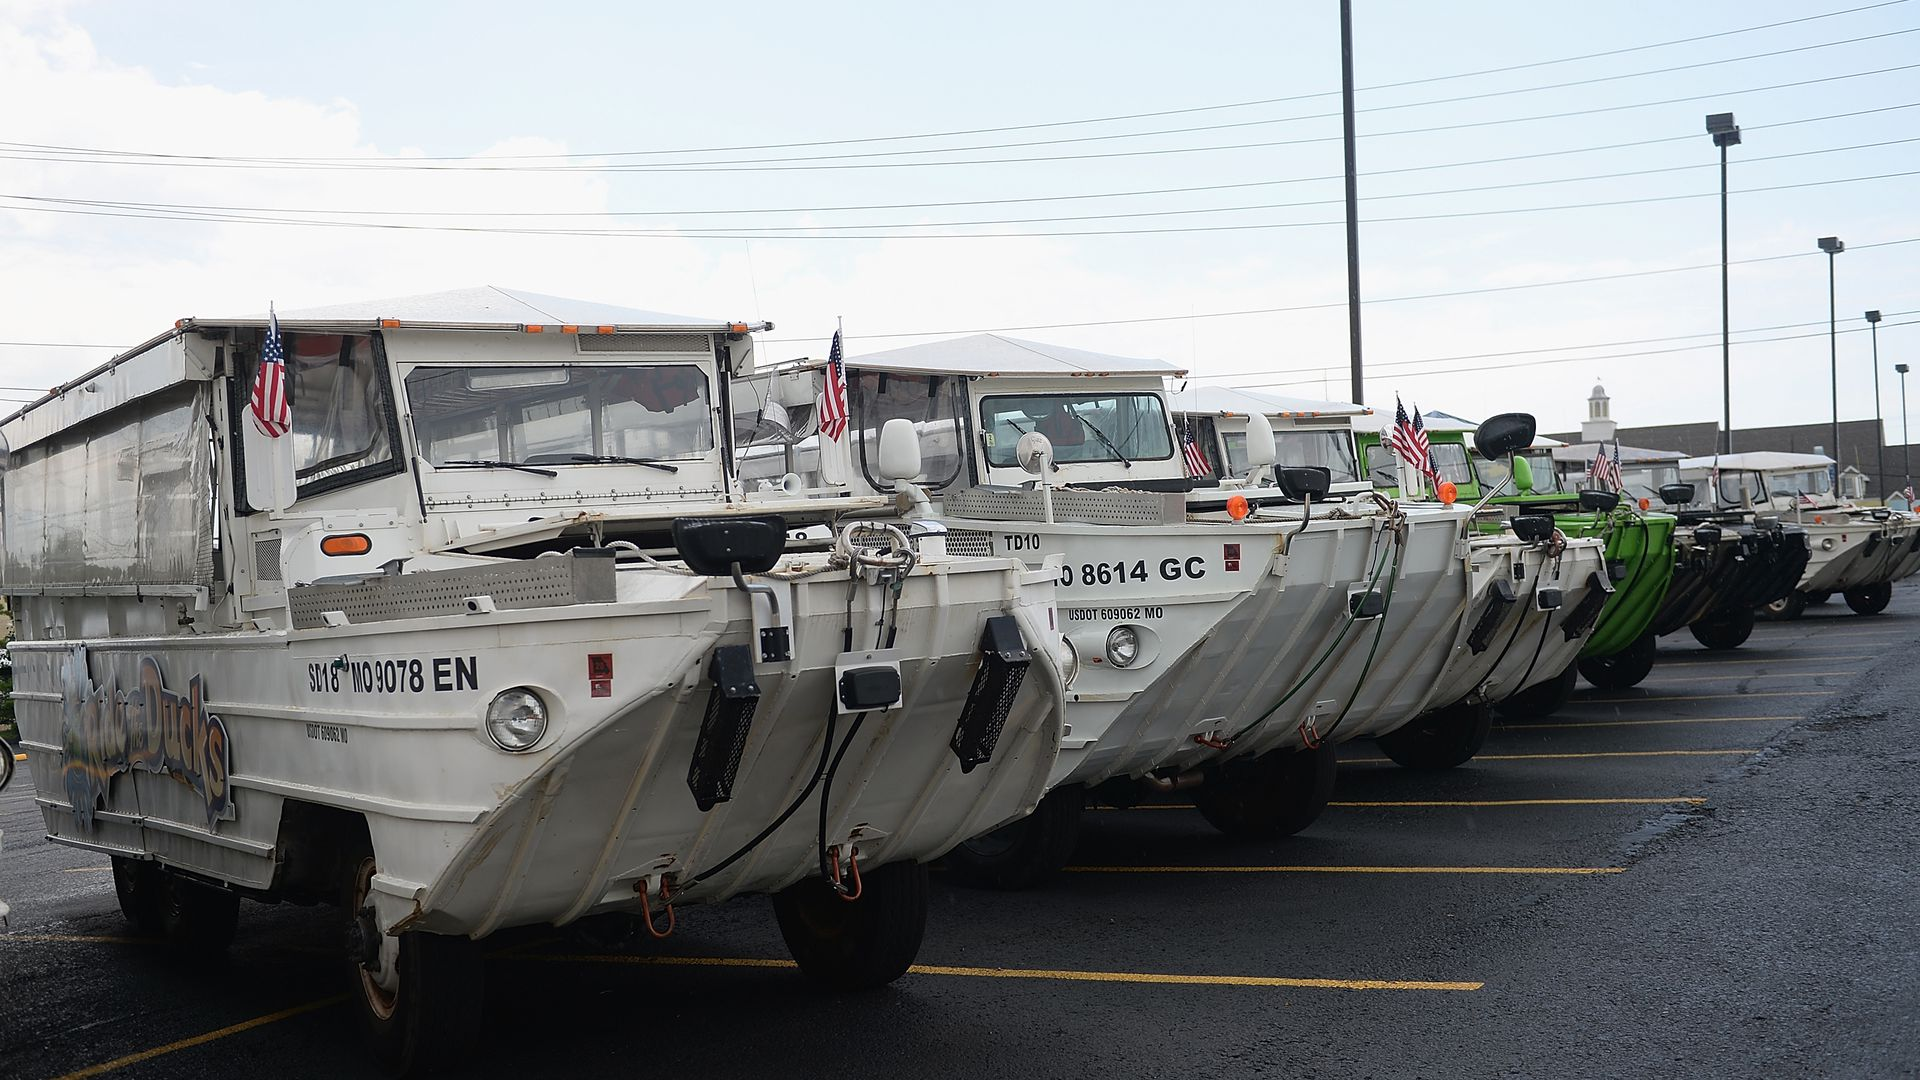 The fleet of the World War II DUKW boats are seen at Ride the Ducks on July 20. Hundreds of mourners stopped by to pay their respects to the victims after a duck boat capsized.